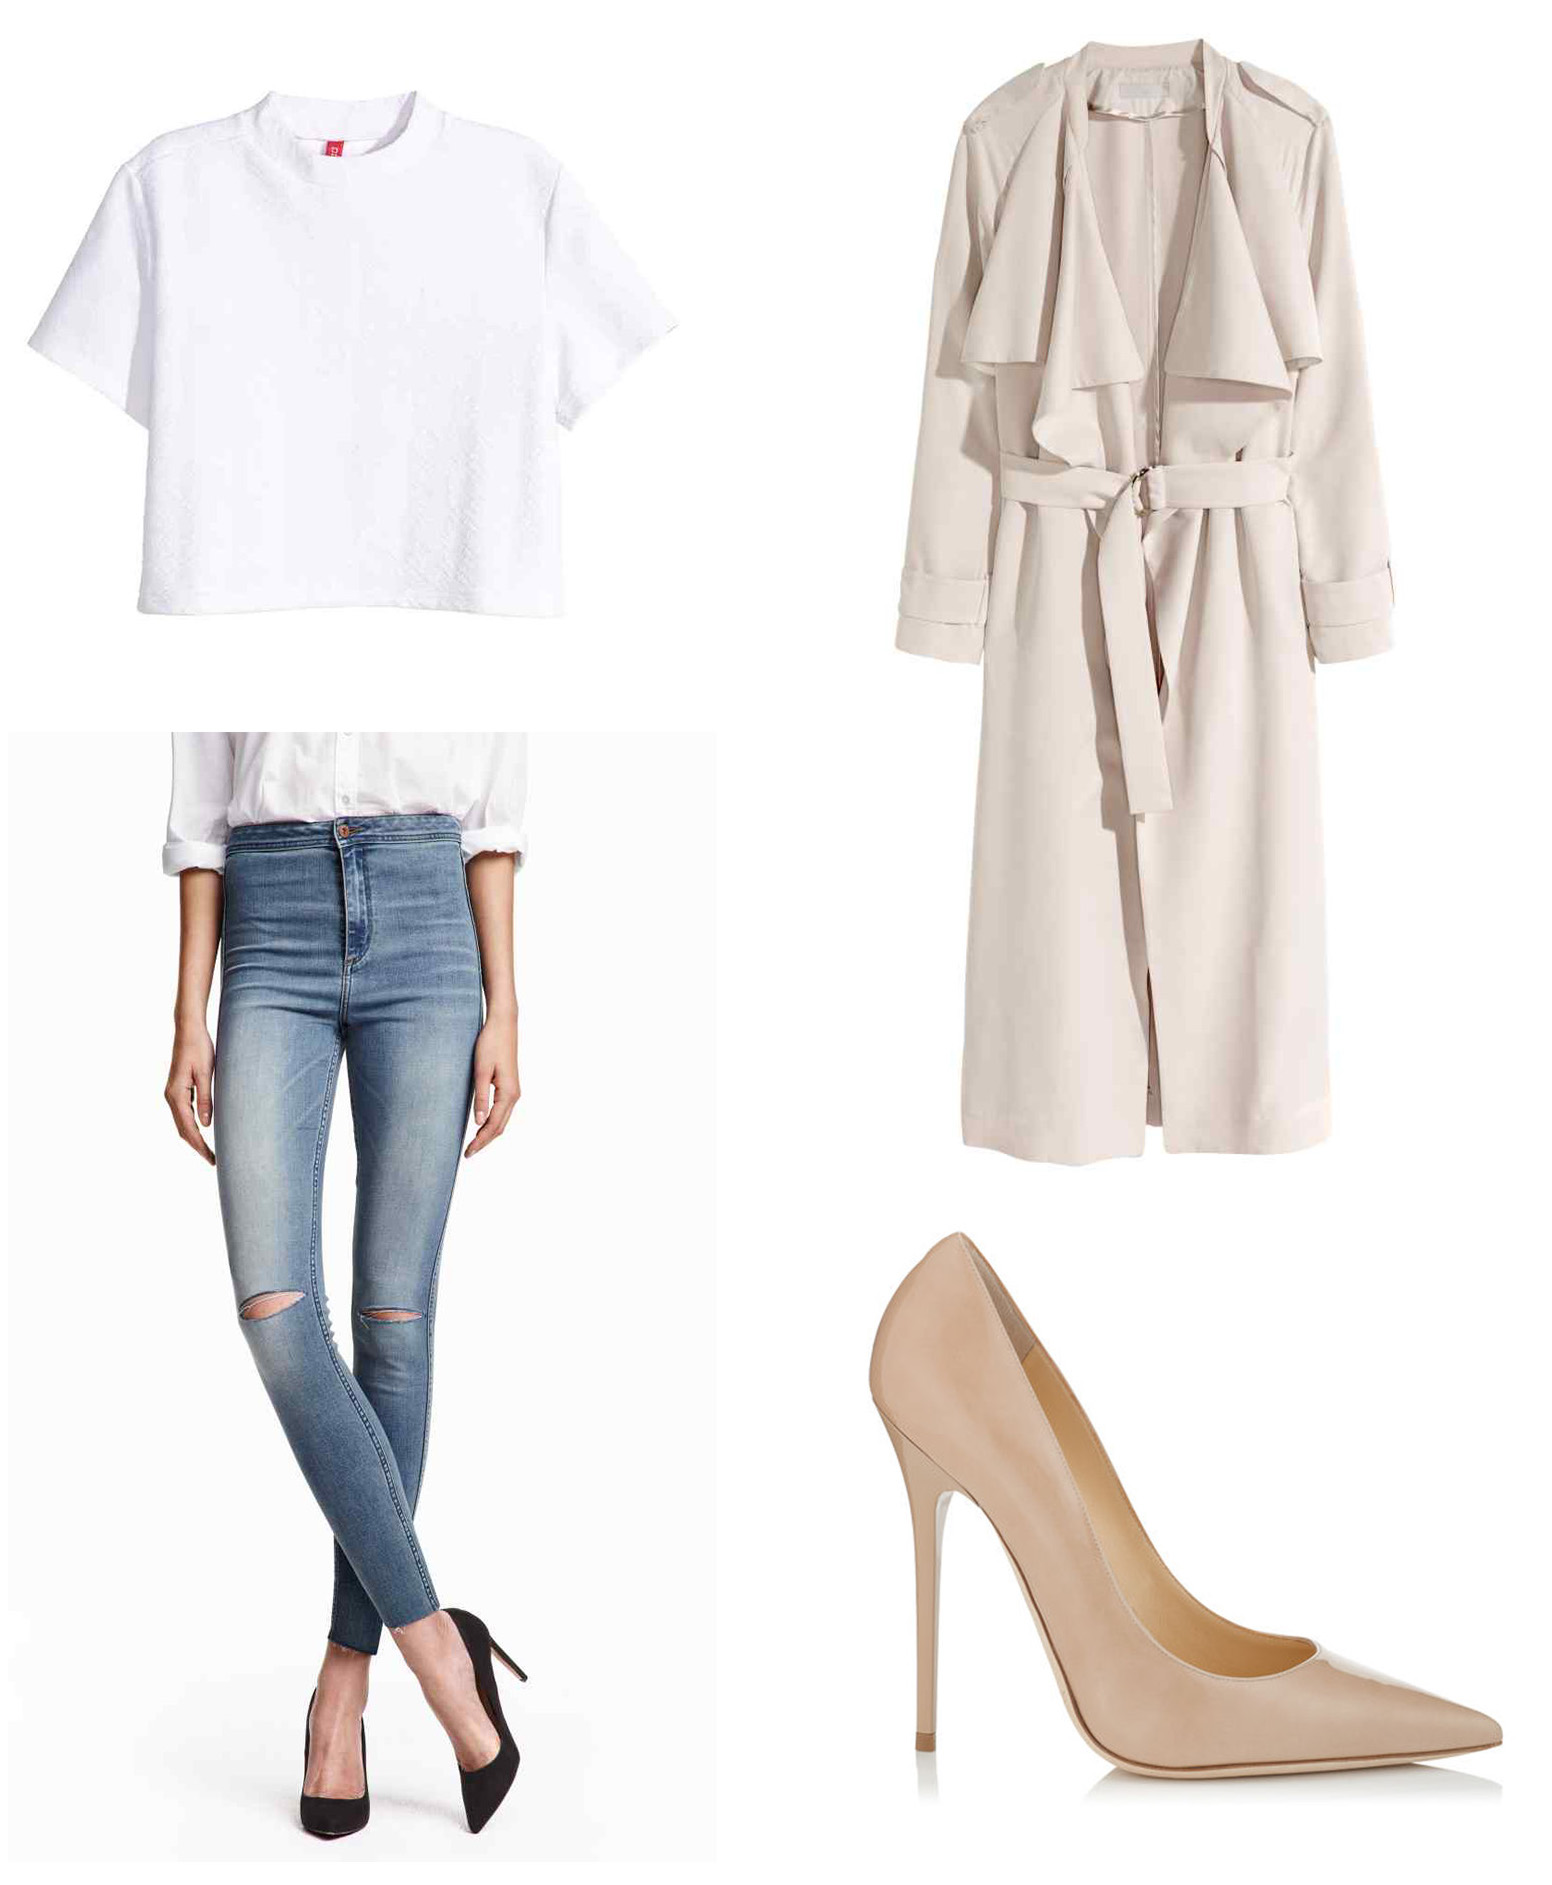 How to steal Kendall's style - White & nude outfit